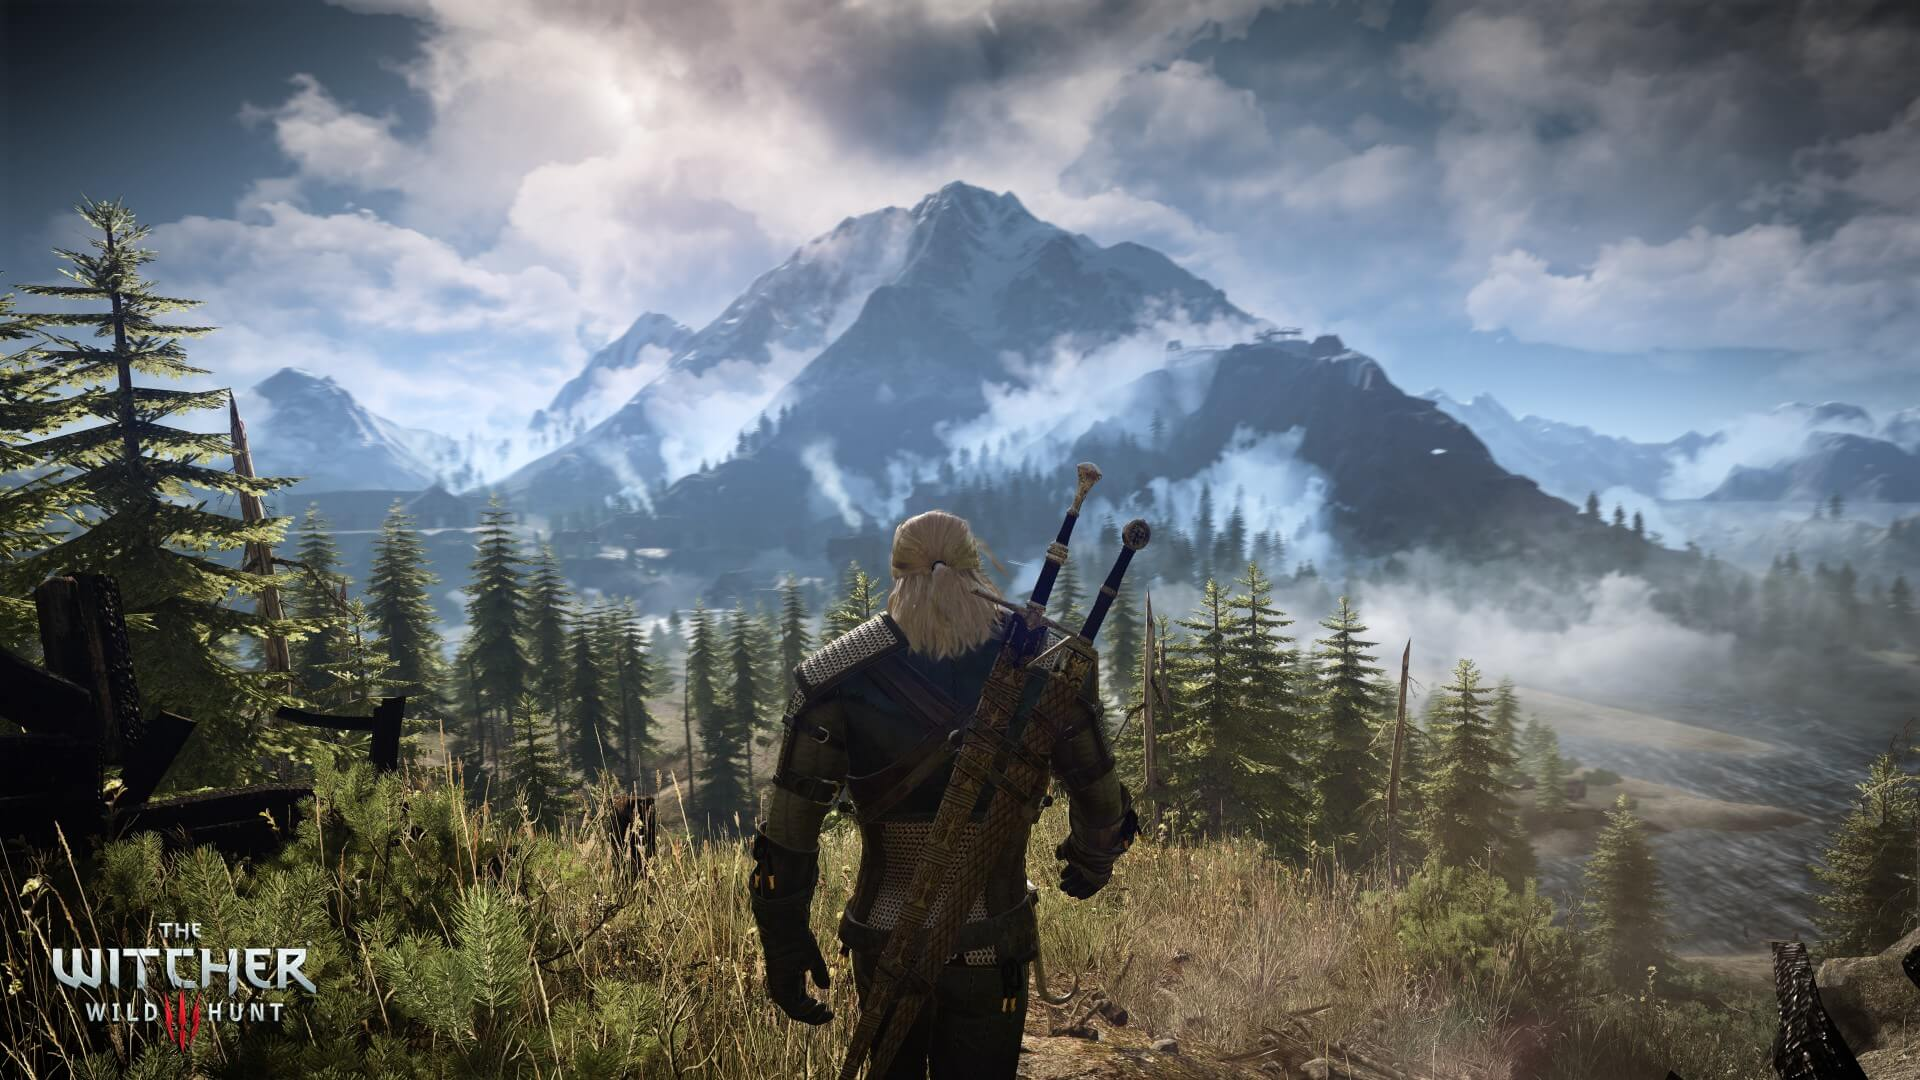 The Witcher 3: Wild Hunt Forest Environment Screenshot